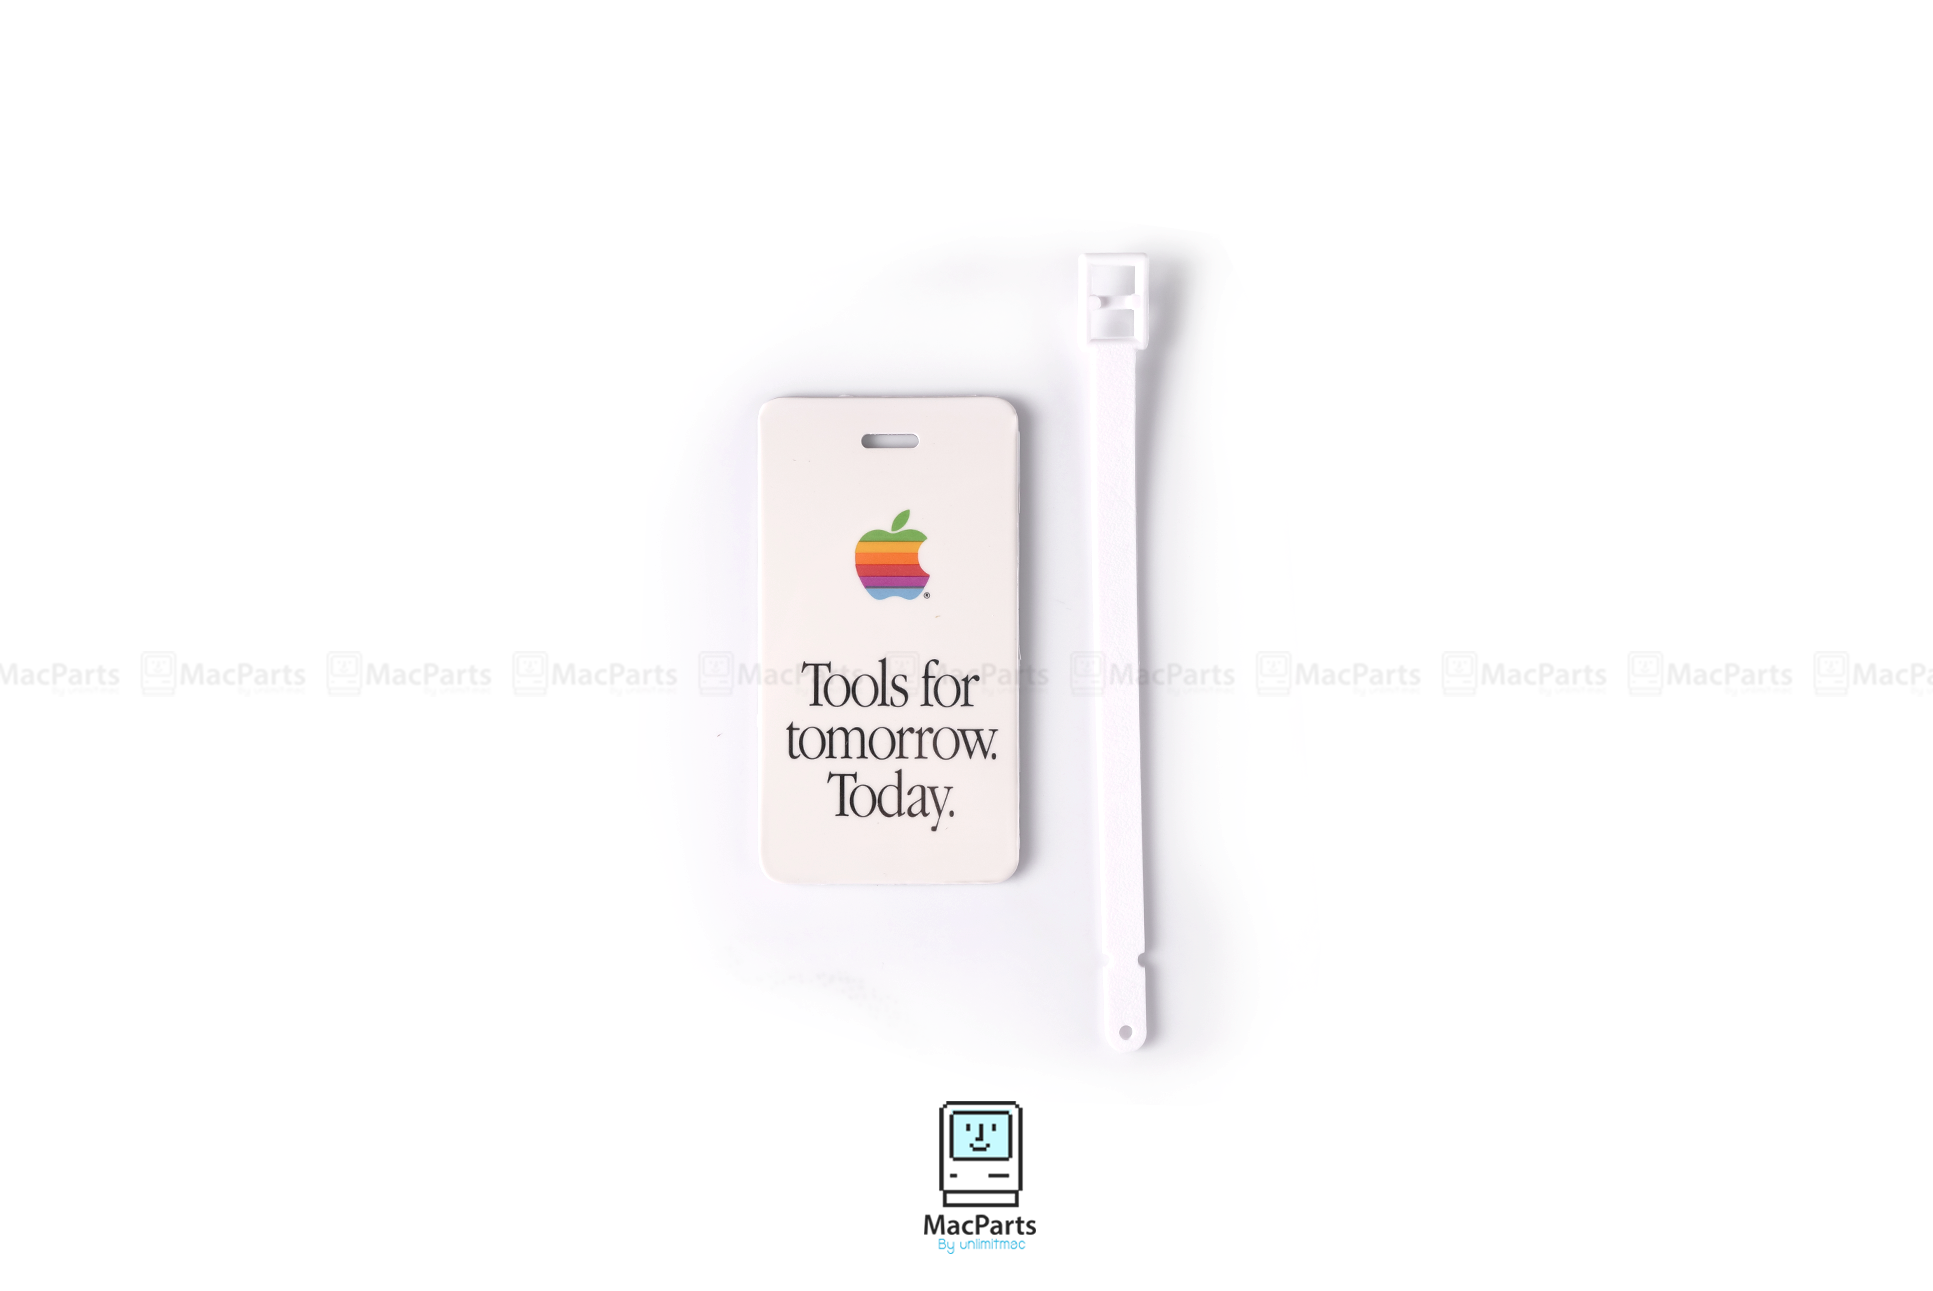 Apple Macintosh Computer Luggage Tag Tools For Tomorrow Today